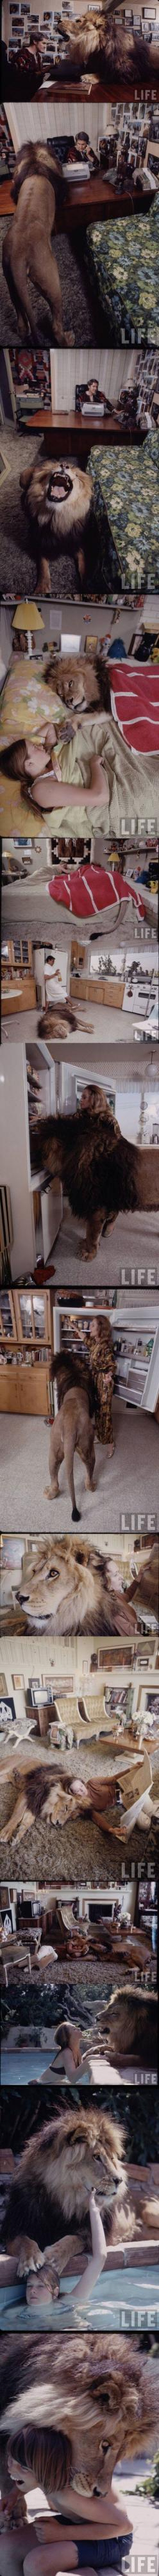 Living with a lion: Mojave Desert, Hendren Established, Animals, Cat, Melanie Griffith, Pet Lion, Dream, Shambala Preserve, Wildlife Sanctuary